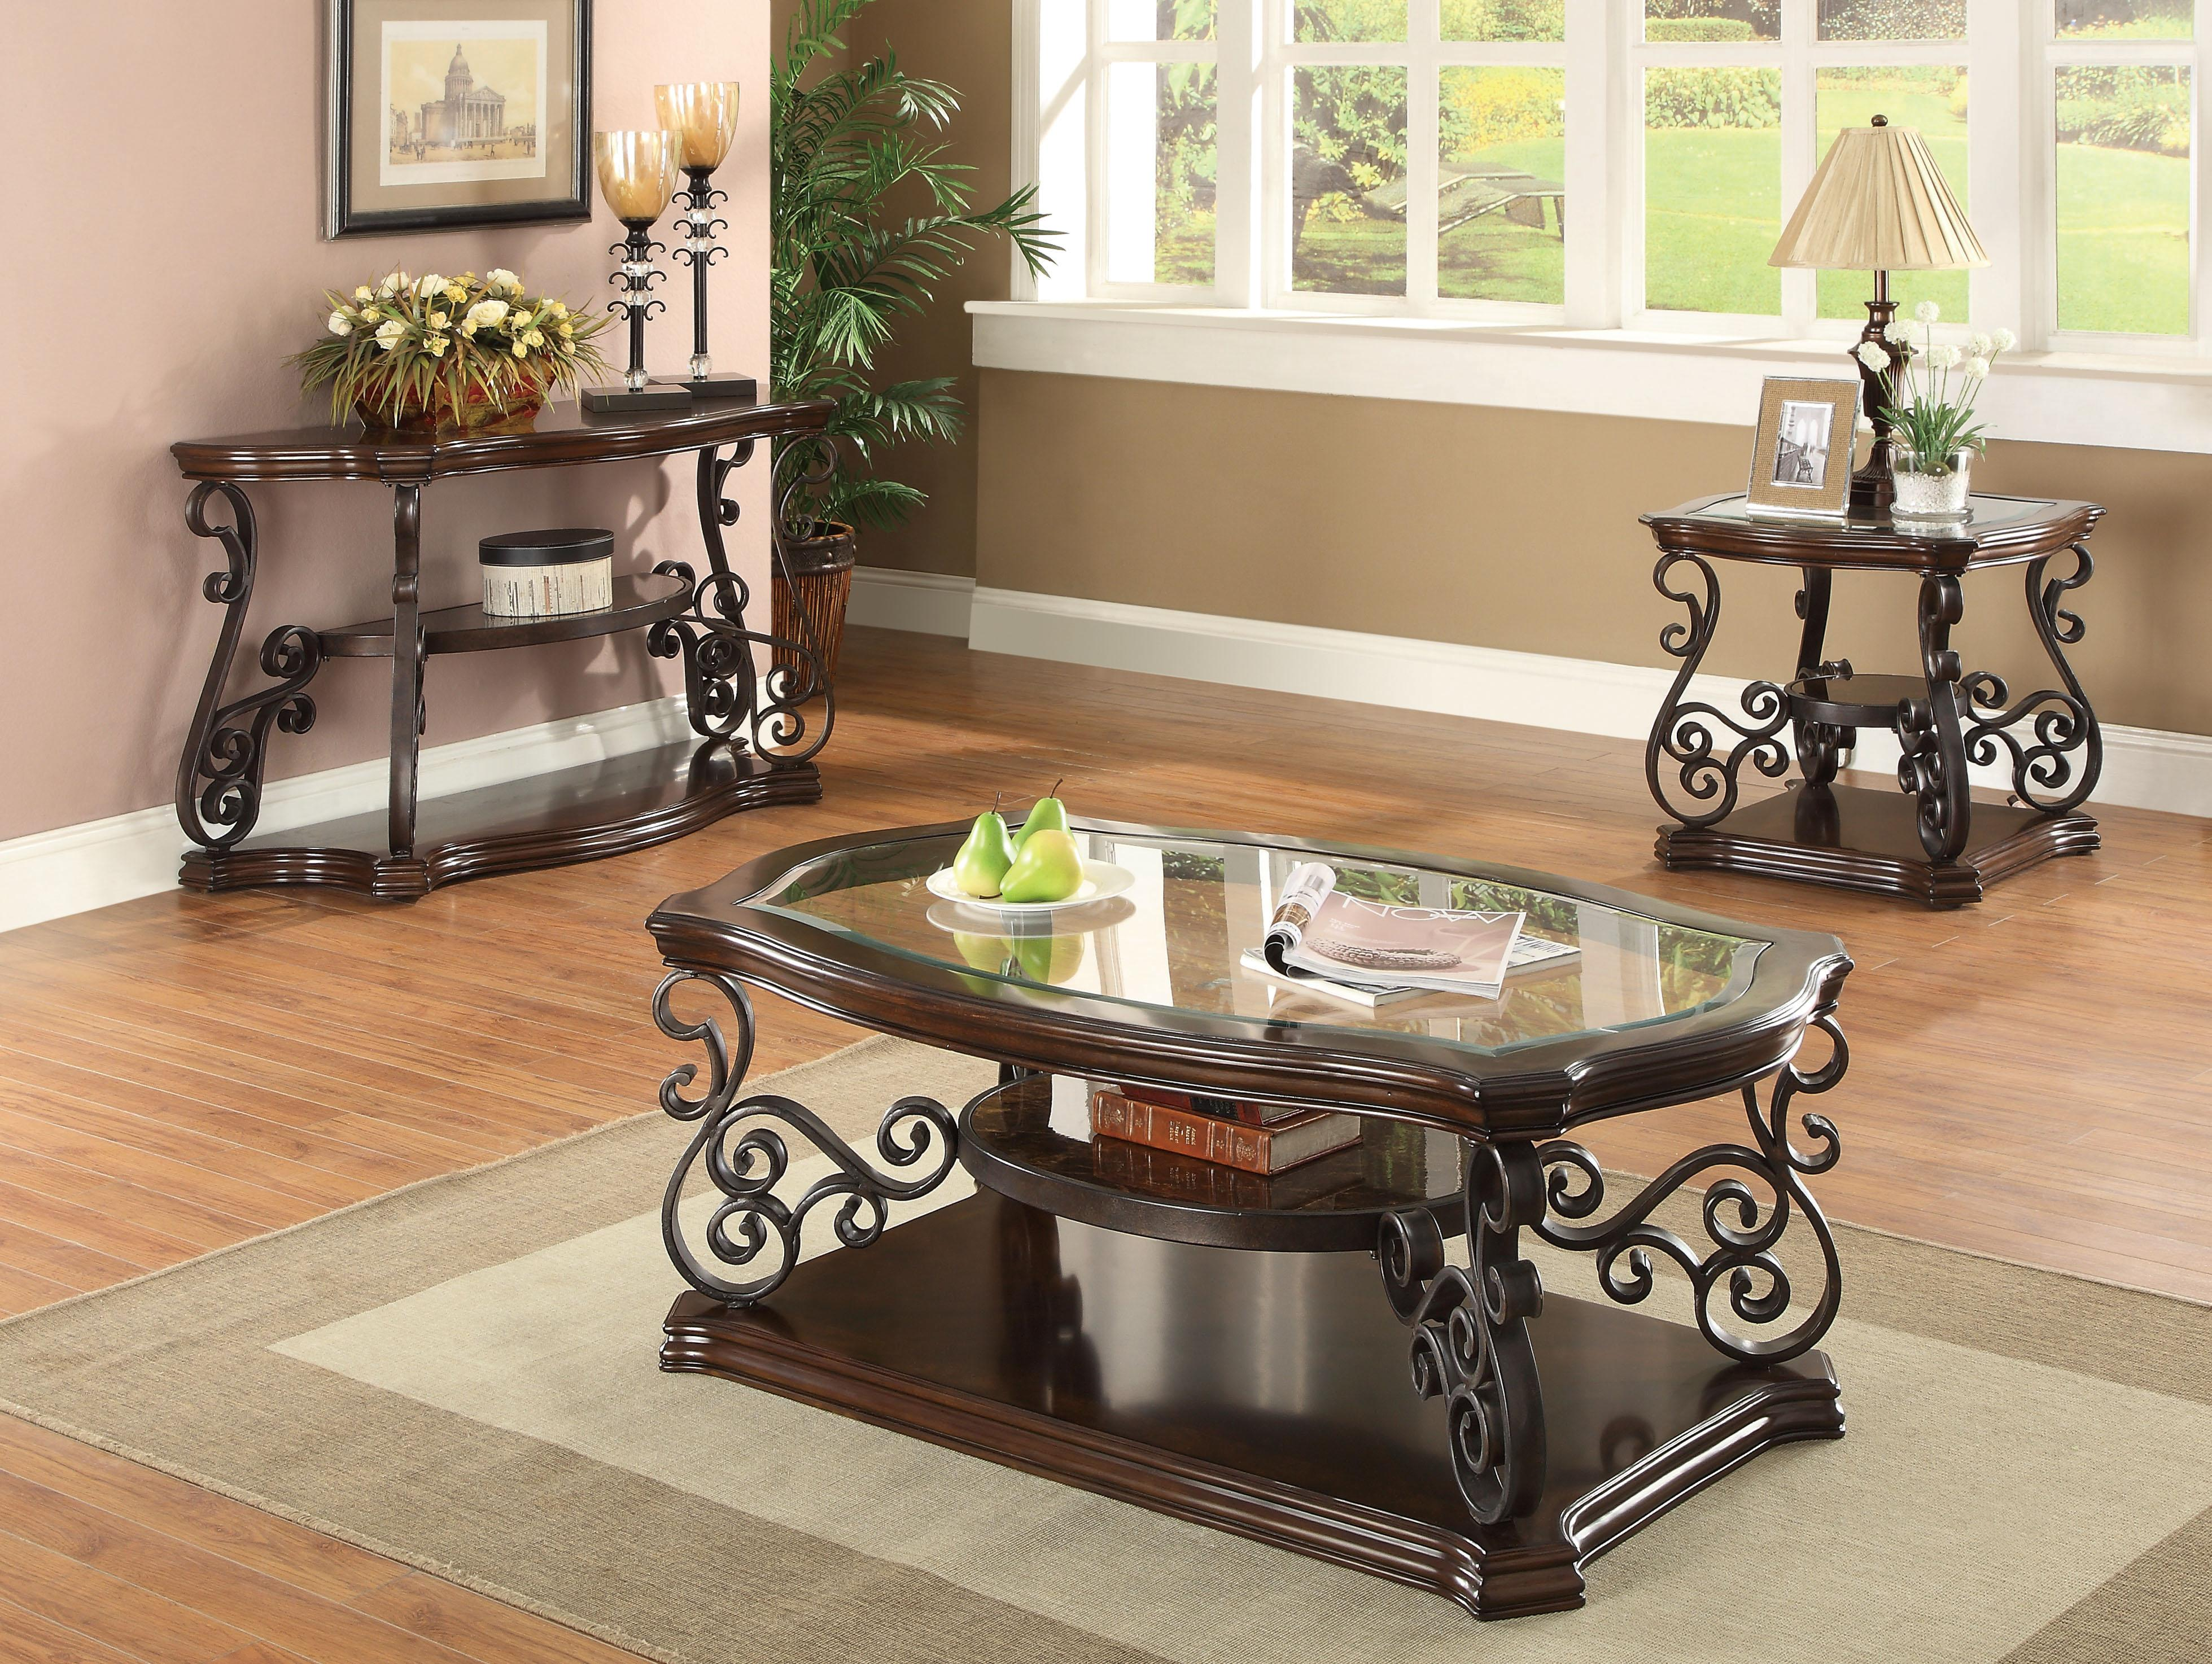 Coaster Occasional Group 702448 Coffee Table Northeast Factory Direct Tail Tables Cleveland Eastlake Westlake Mentor Medina Ohio